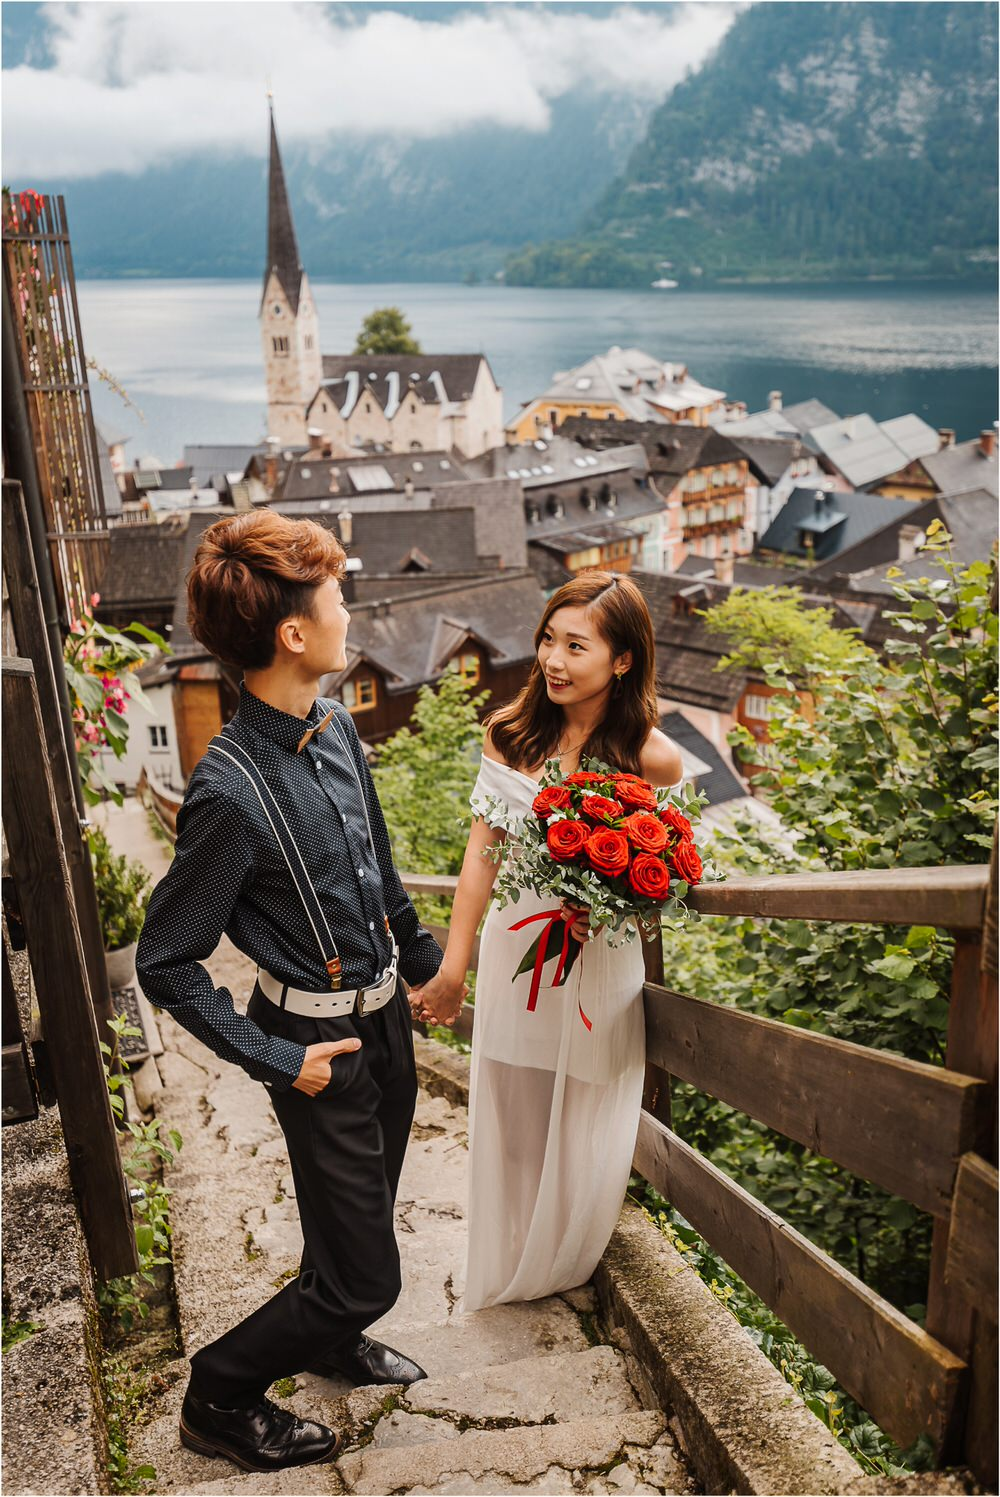 hallstatt austria wedding engagement photographer asian proposal surprise photography recommended nature professional 0018.jpg